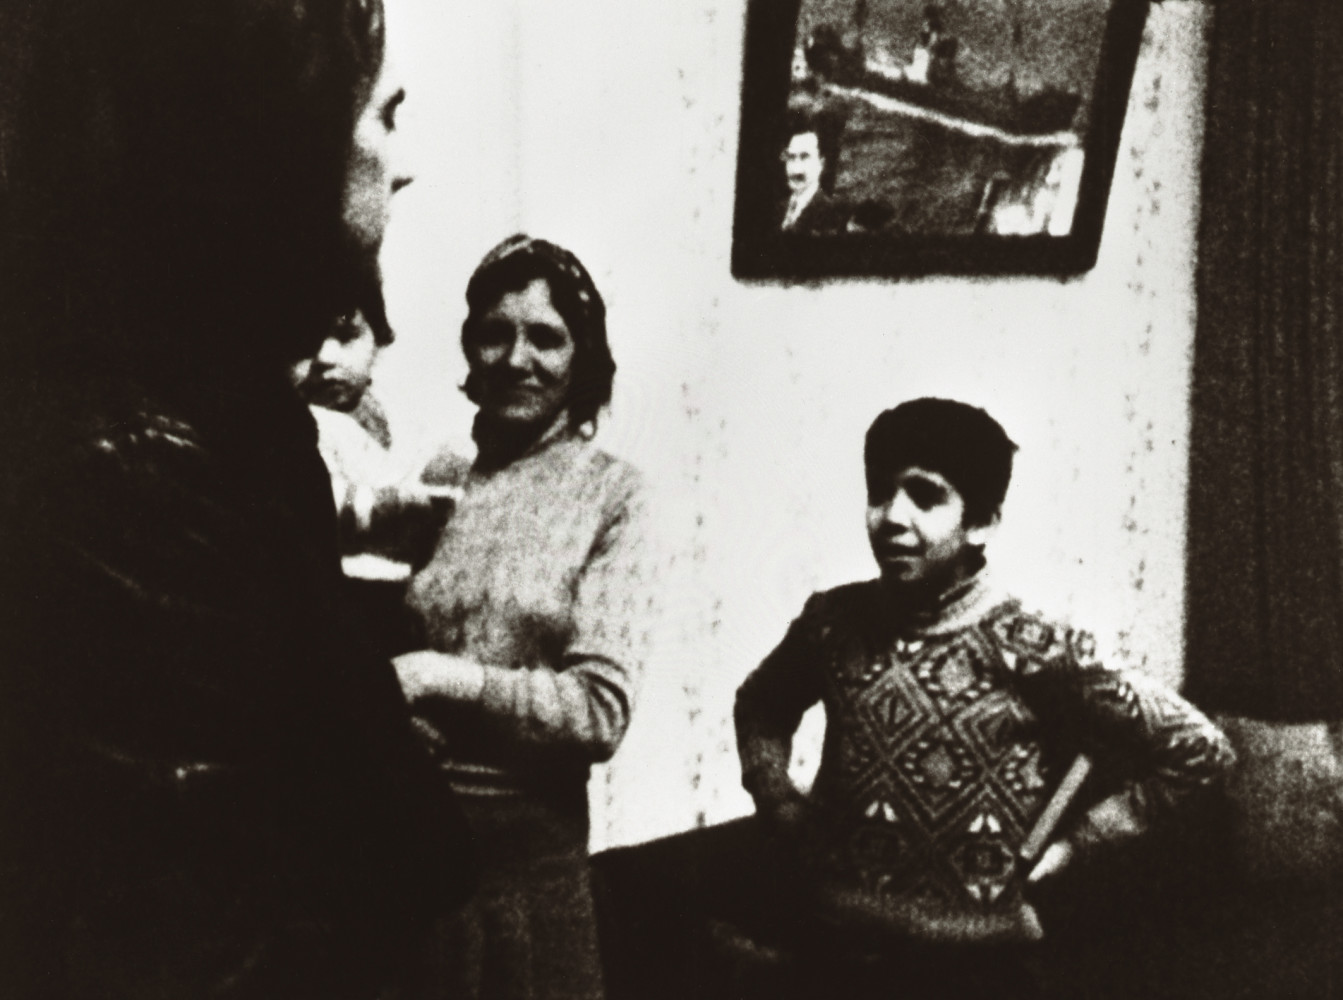 <div class=&#34;artist&#34;><strong>ULAY</strong></div> 1943 - <div class=&#34;title&#34;><em>Irritation - There is a Criminal Touch to Art</em>, 1976</div> <div class=&#34;medium&#34;>Set of 11 analogue Baryta prints with film<br /> Printed 2018</div> <div class=&#34;dimensions&#34;>Each sheet: 50 x 70 cm </div> <div class=&#34;edition_details&#34;>Edition 1 of 12 + 2 AP</div>